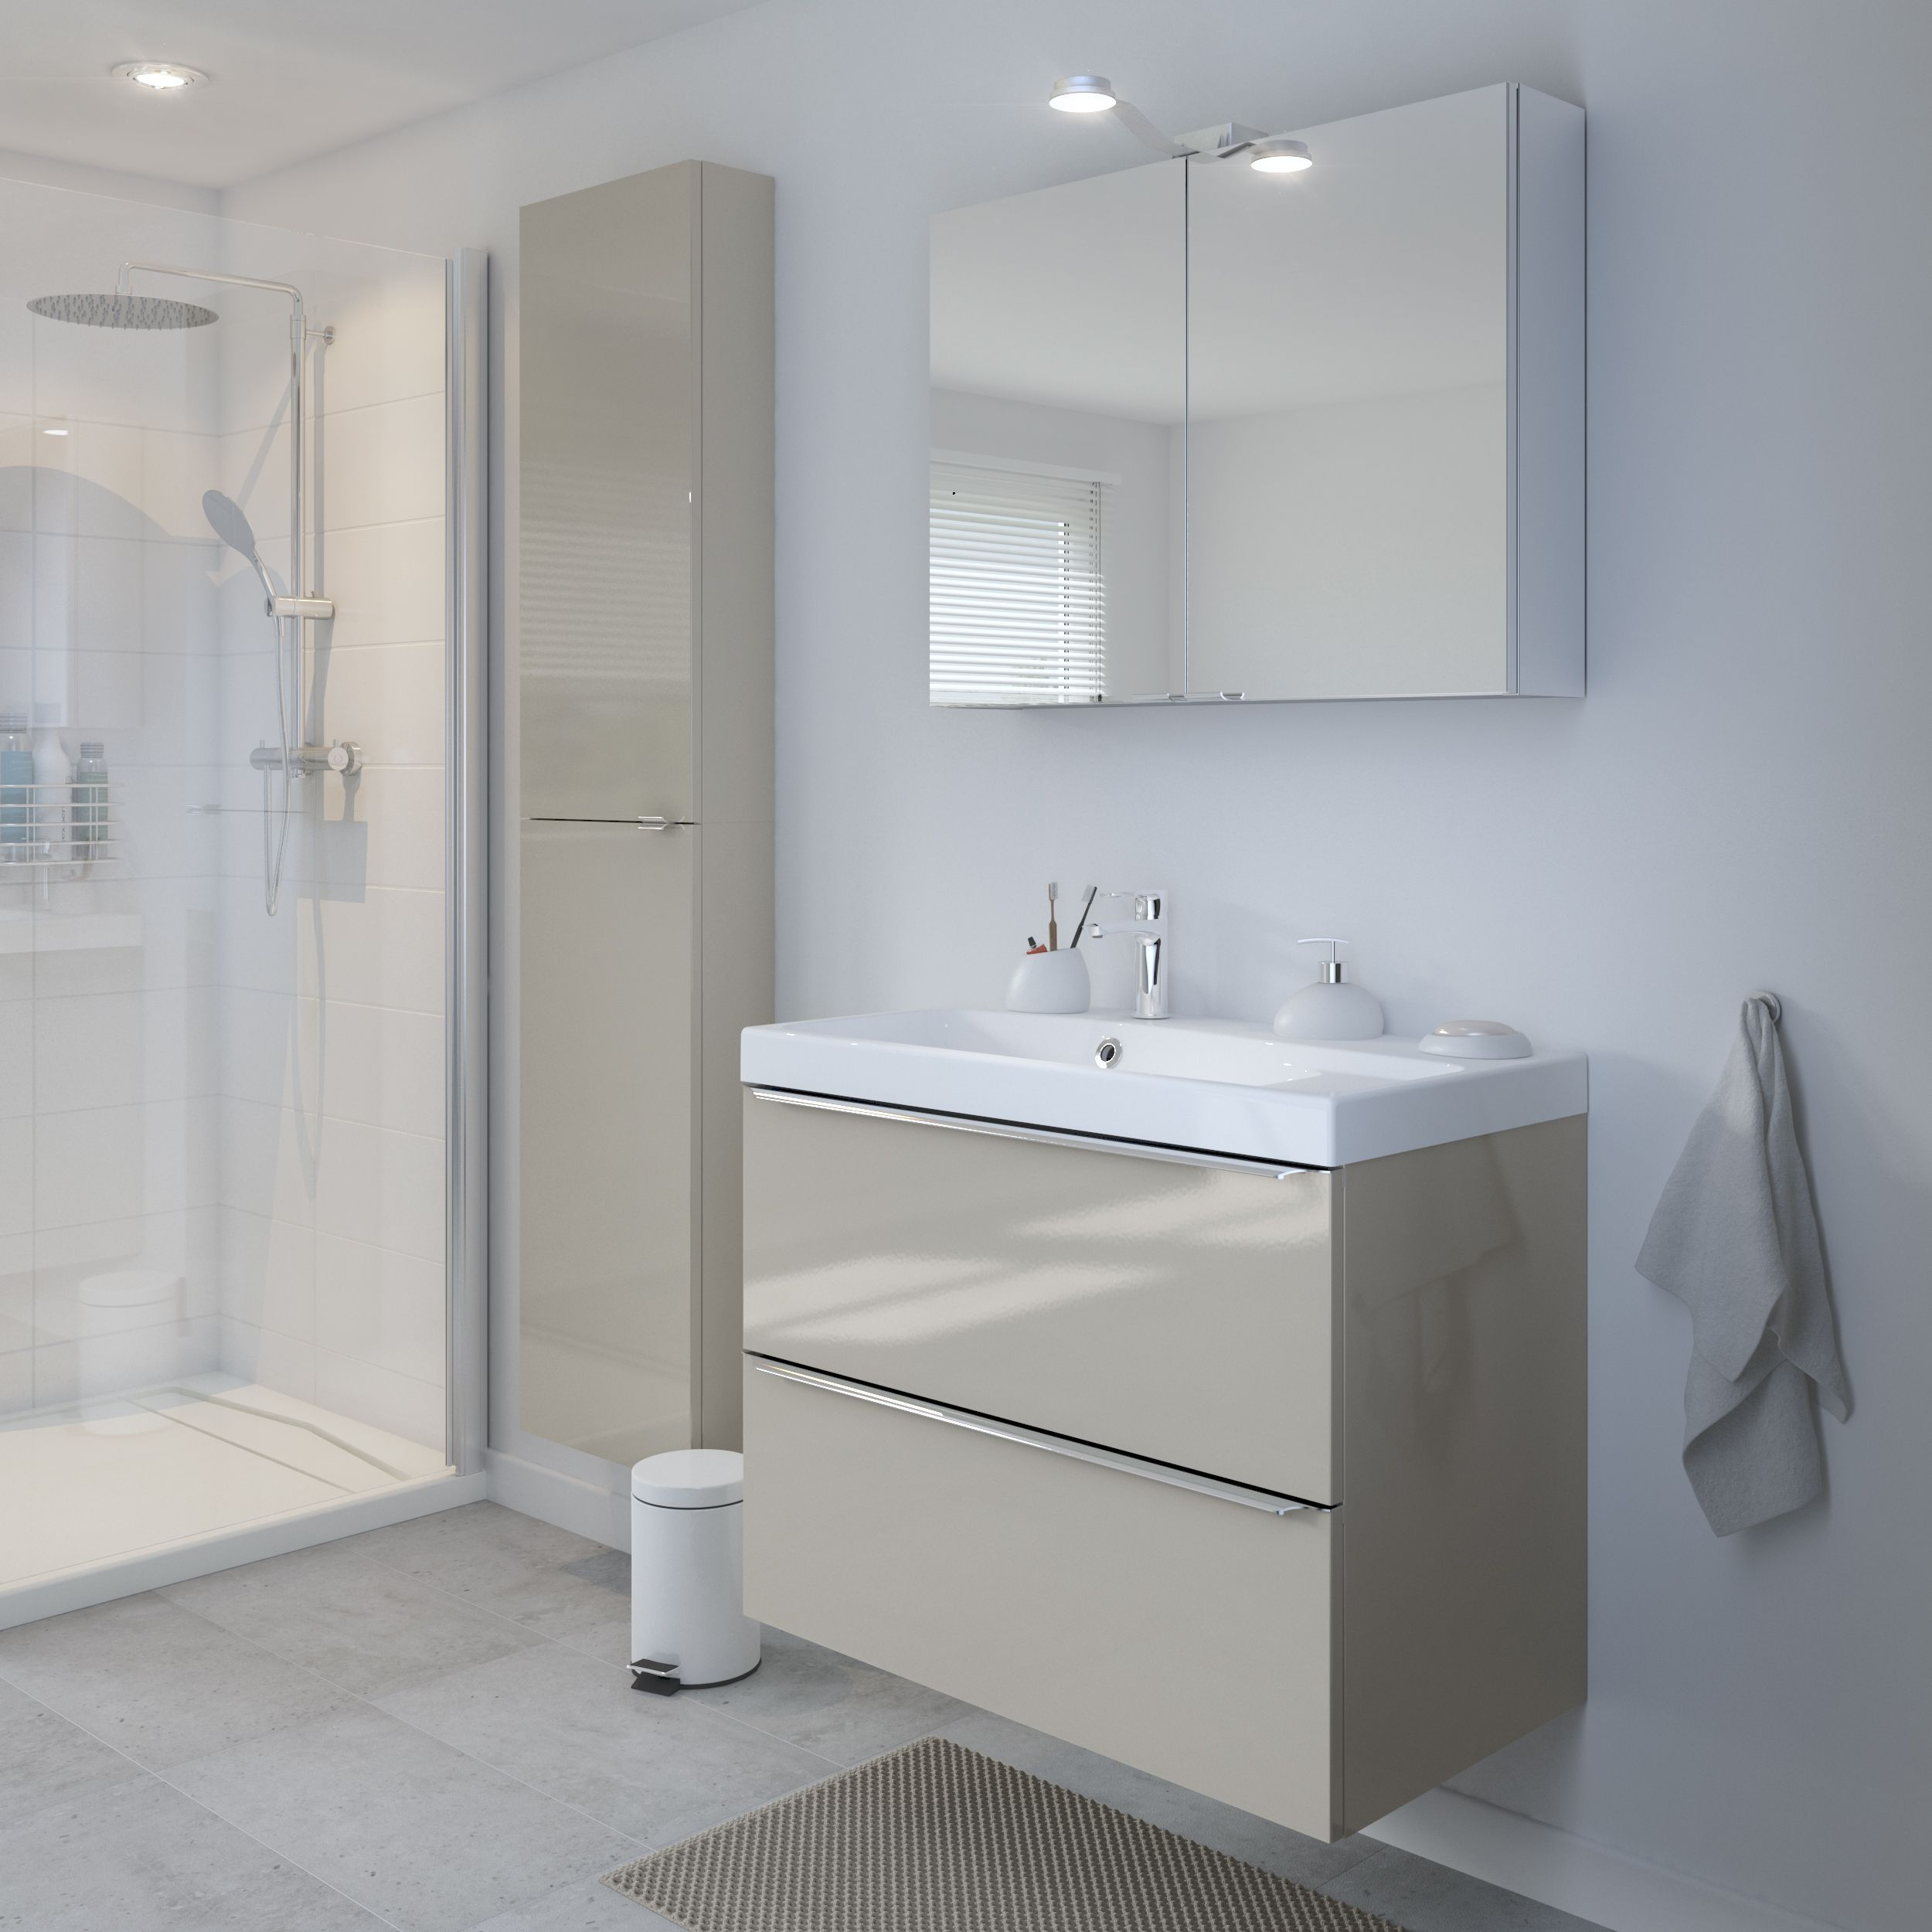 Storage Is Essential In Busy Bathrooms The Imandra Gloss Taupe